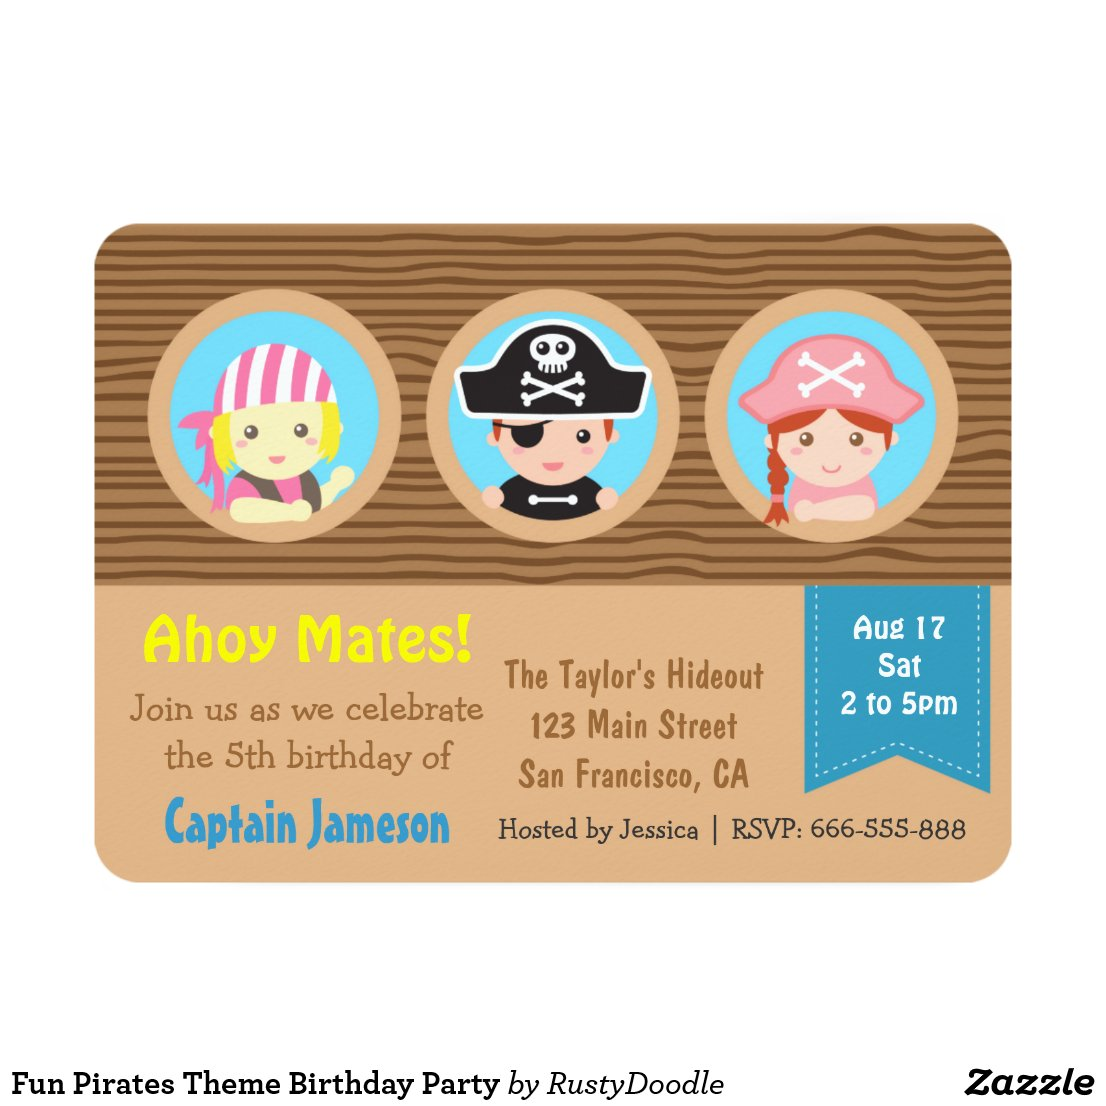 Fun Pirates Theme Birthday Party Card